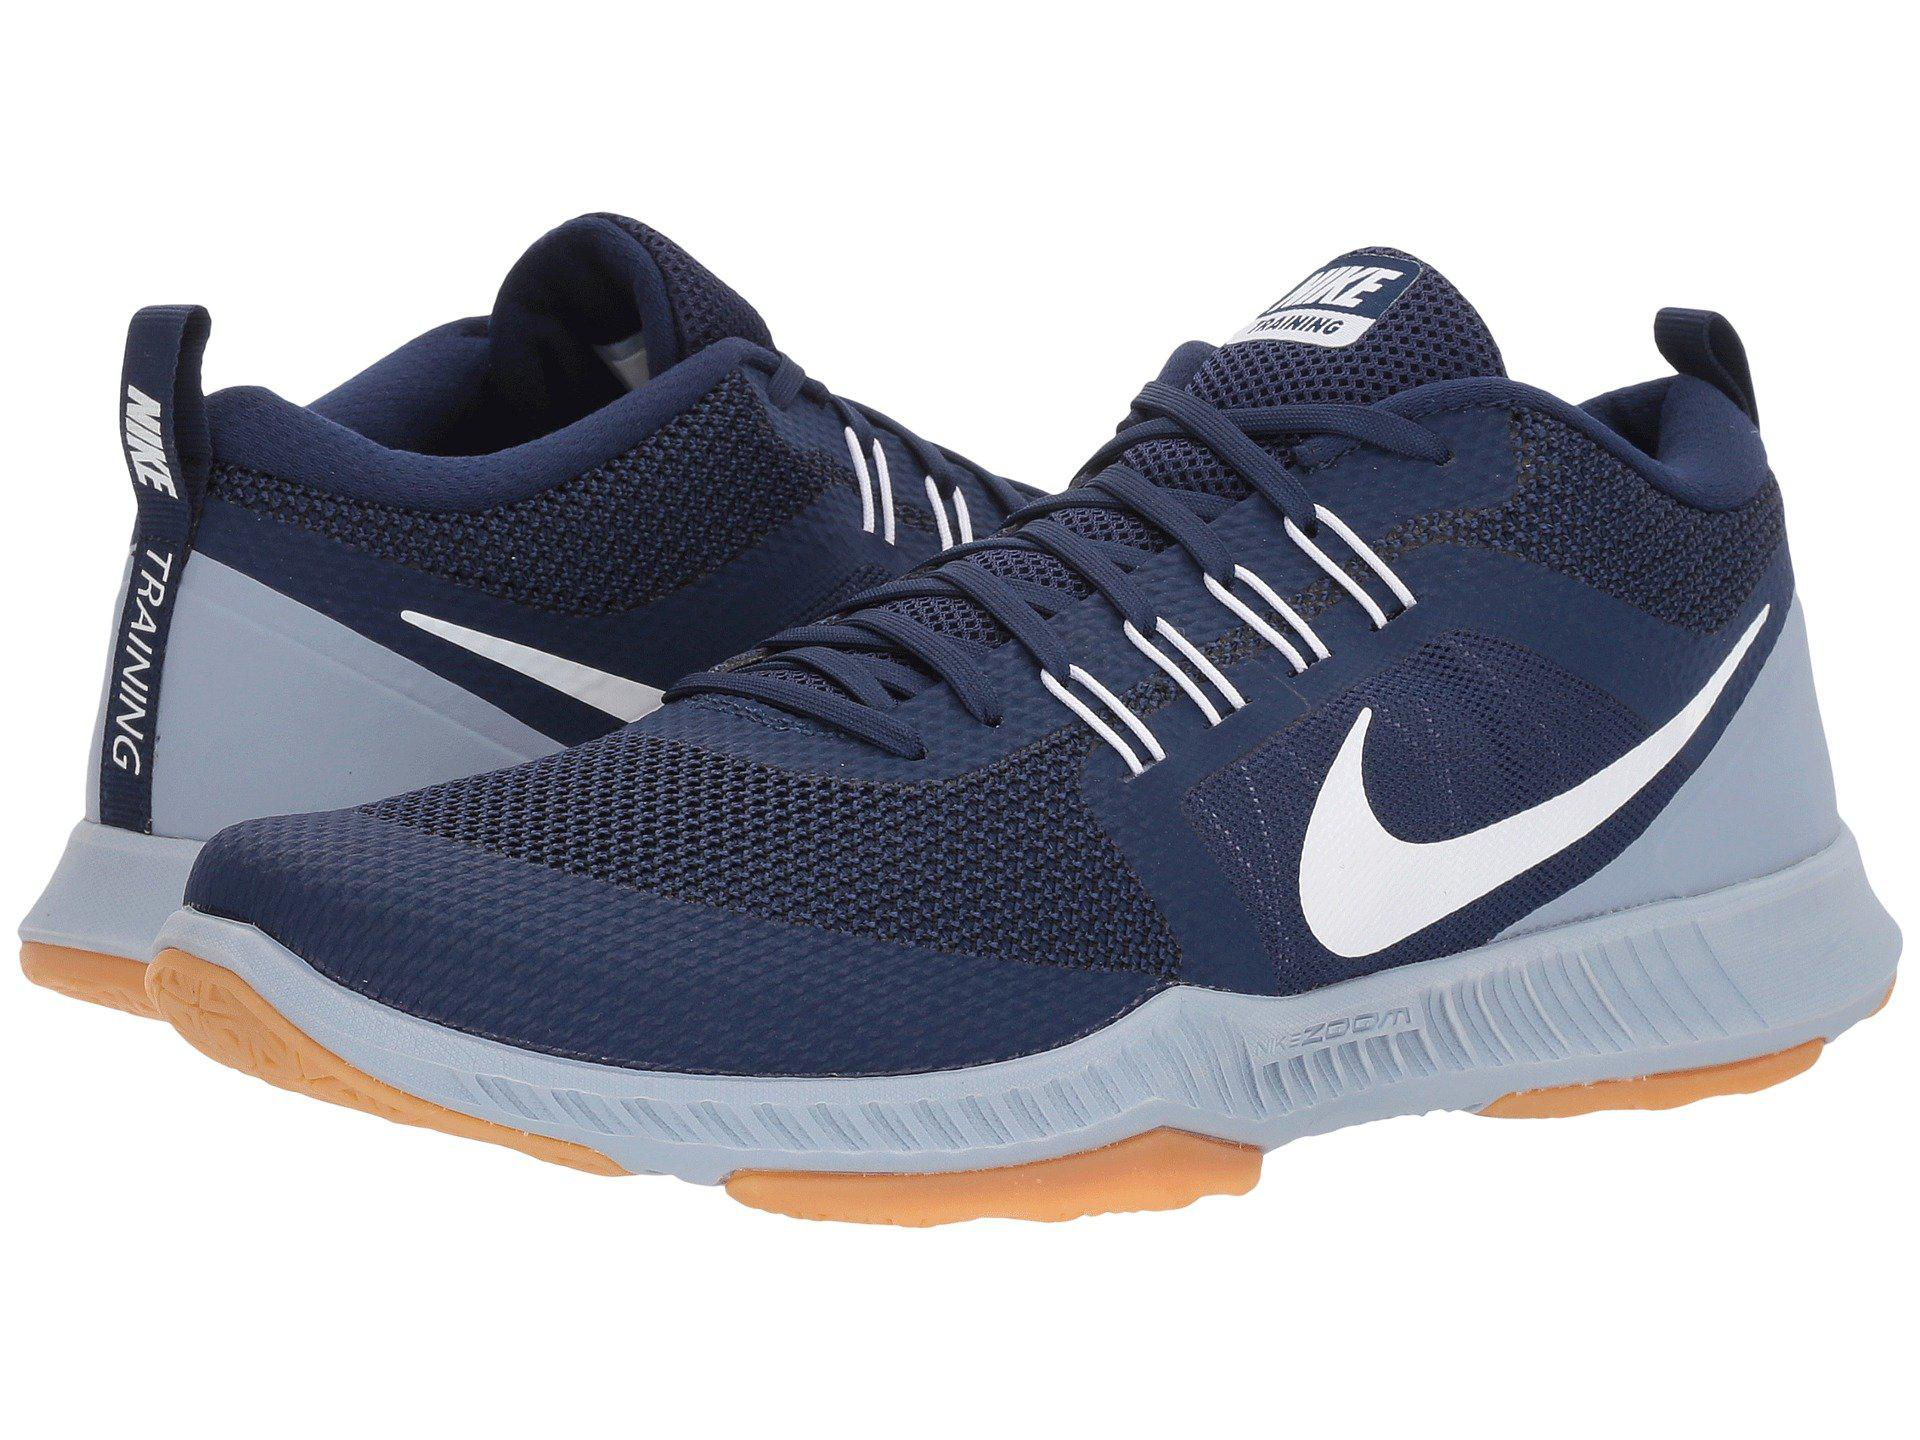 ... Lyst - Nike Zoom Domination Tr in Blue for Men  Nike Air ... ac8201842